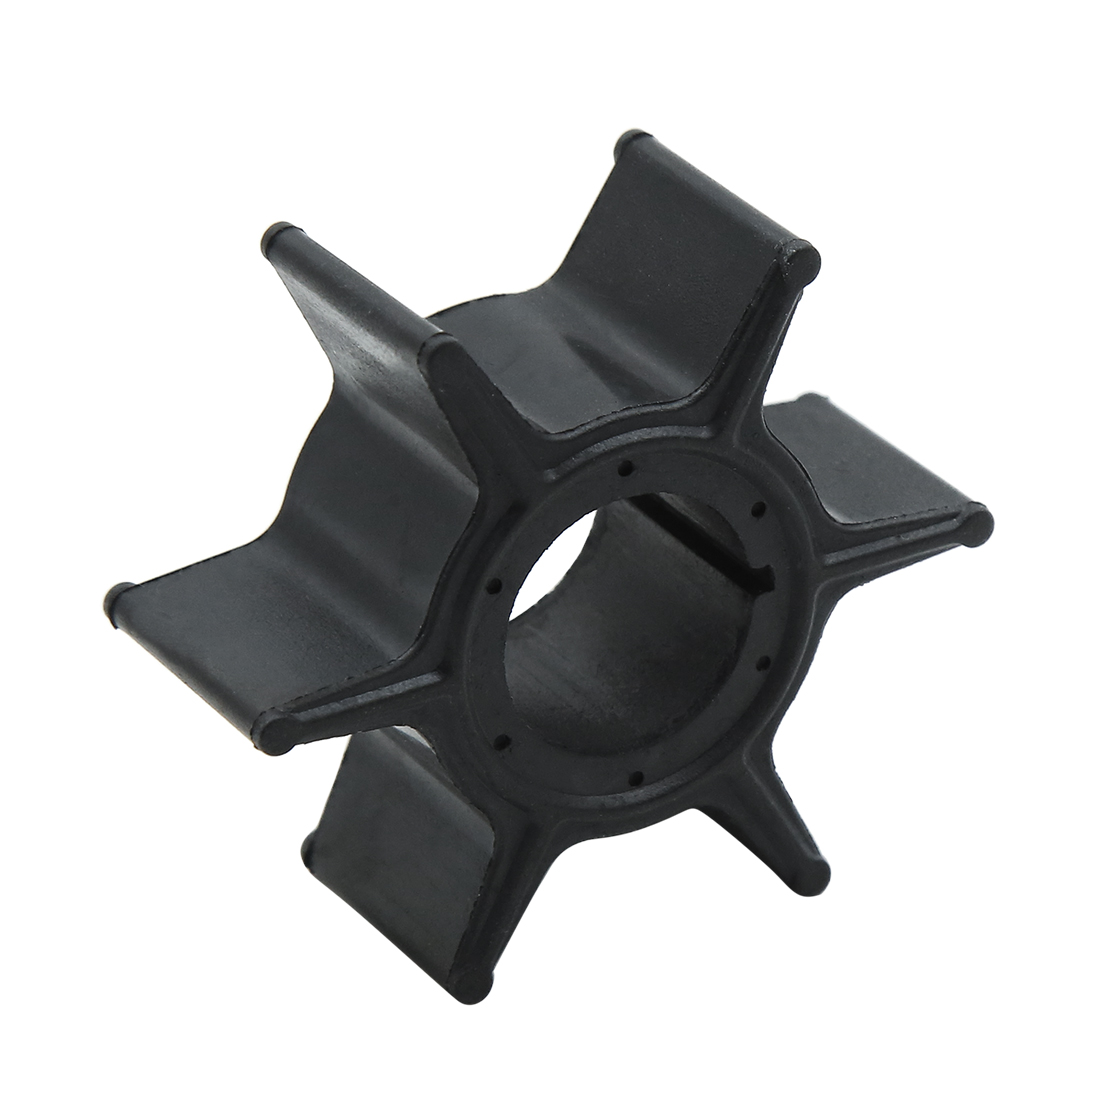 Boat Outboard Water Pump Impeller Replacement Black for Tohatsu 30hp 3C8-65021-2 - image 4 de 4